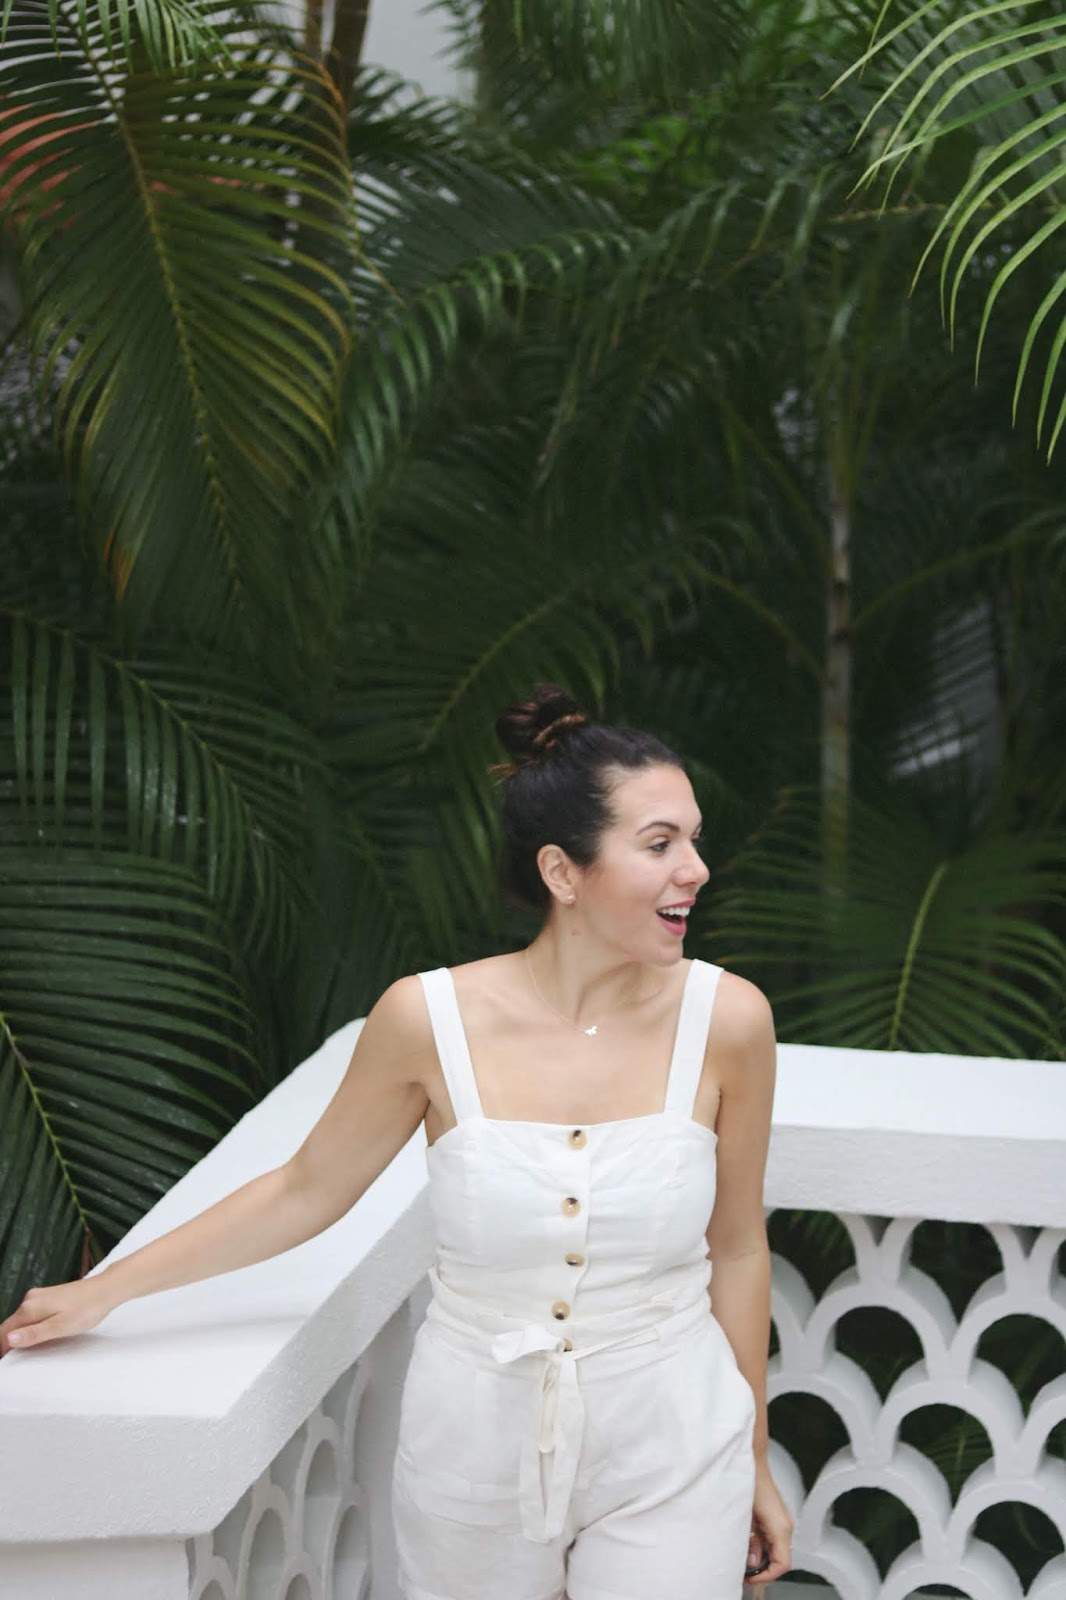 Dynamite linen two piece crop top travel outfit aleesha harris one&only palmilla resort